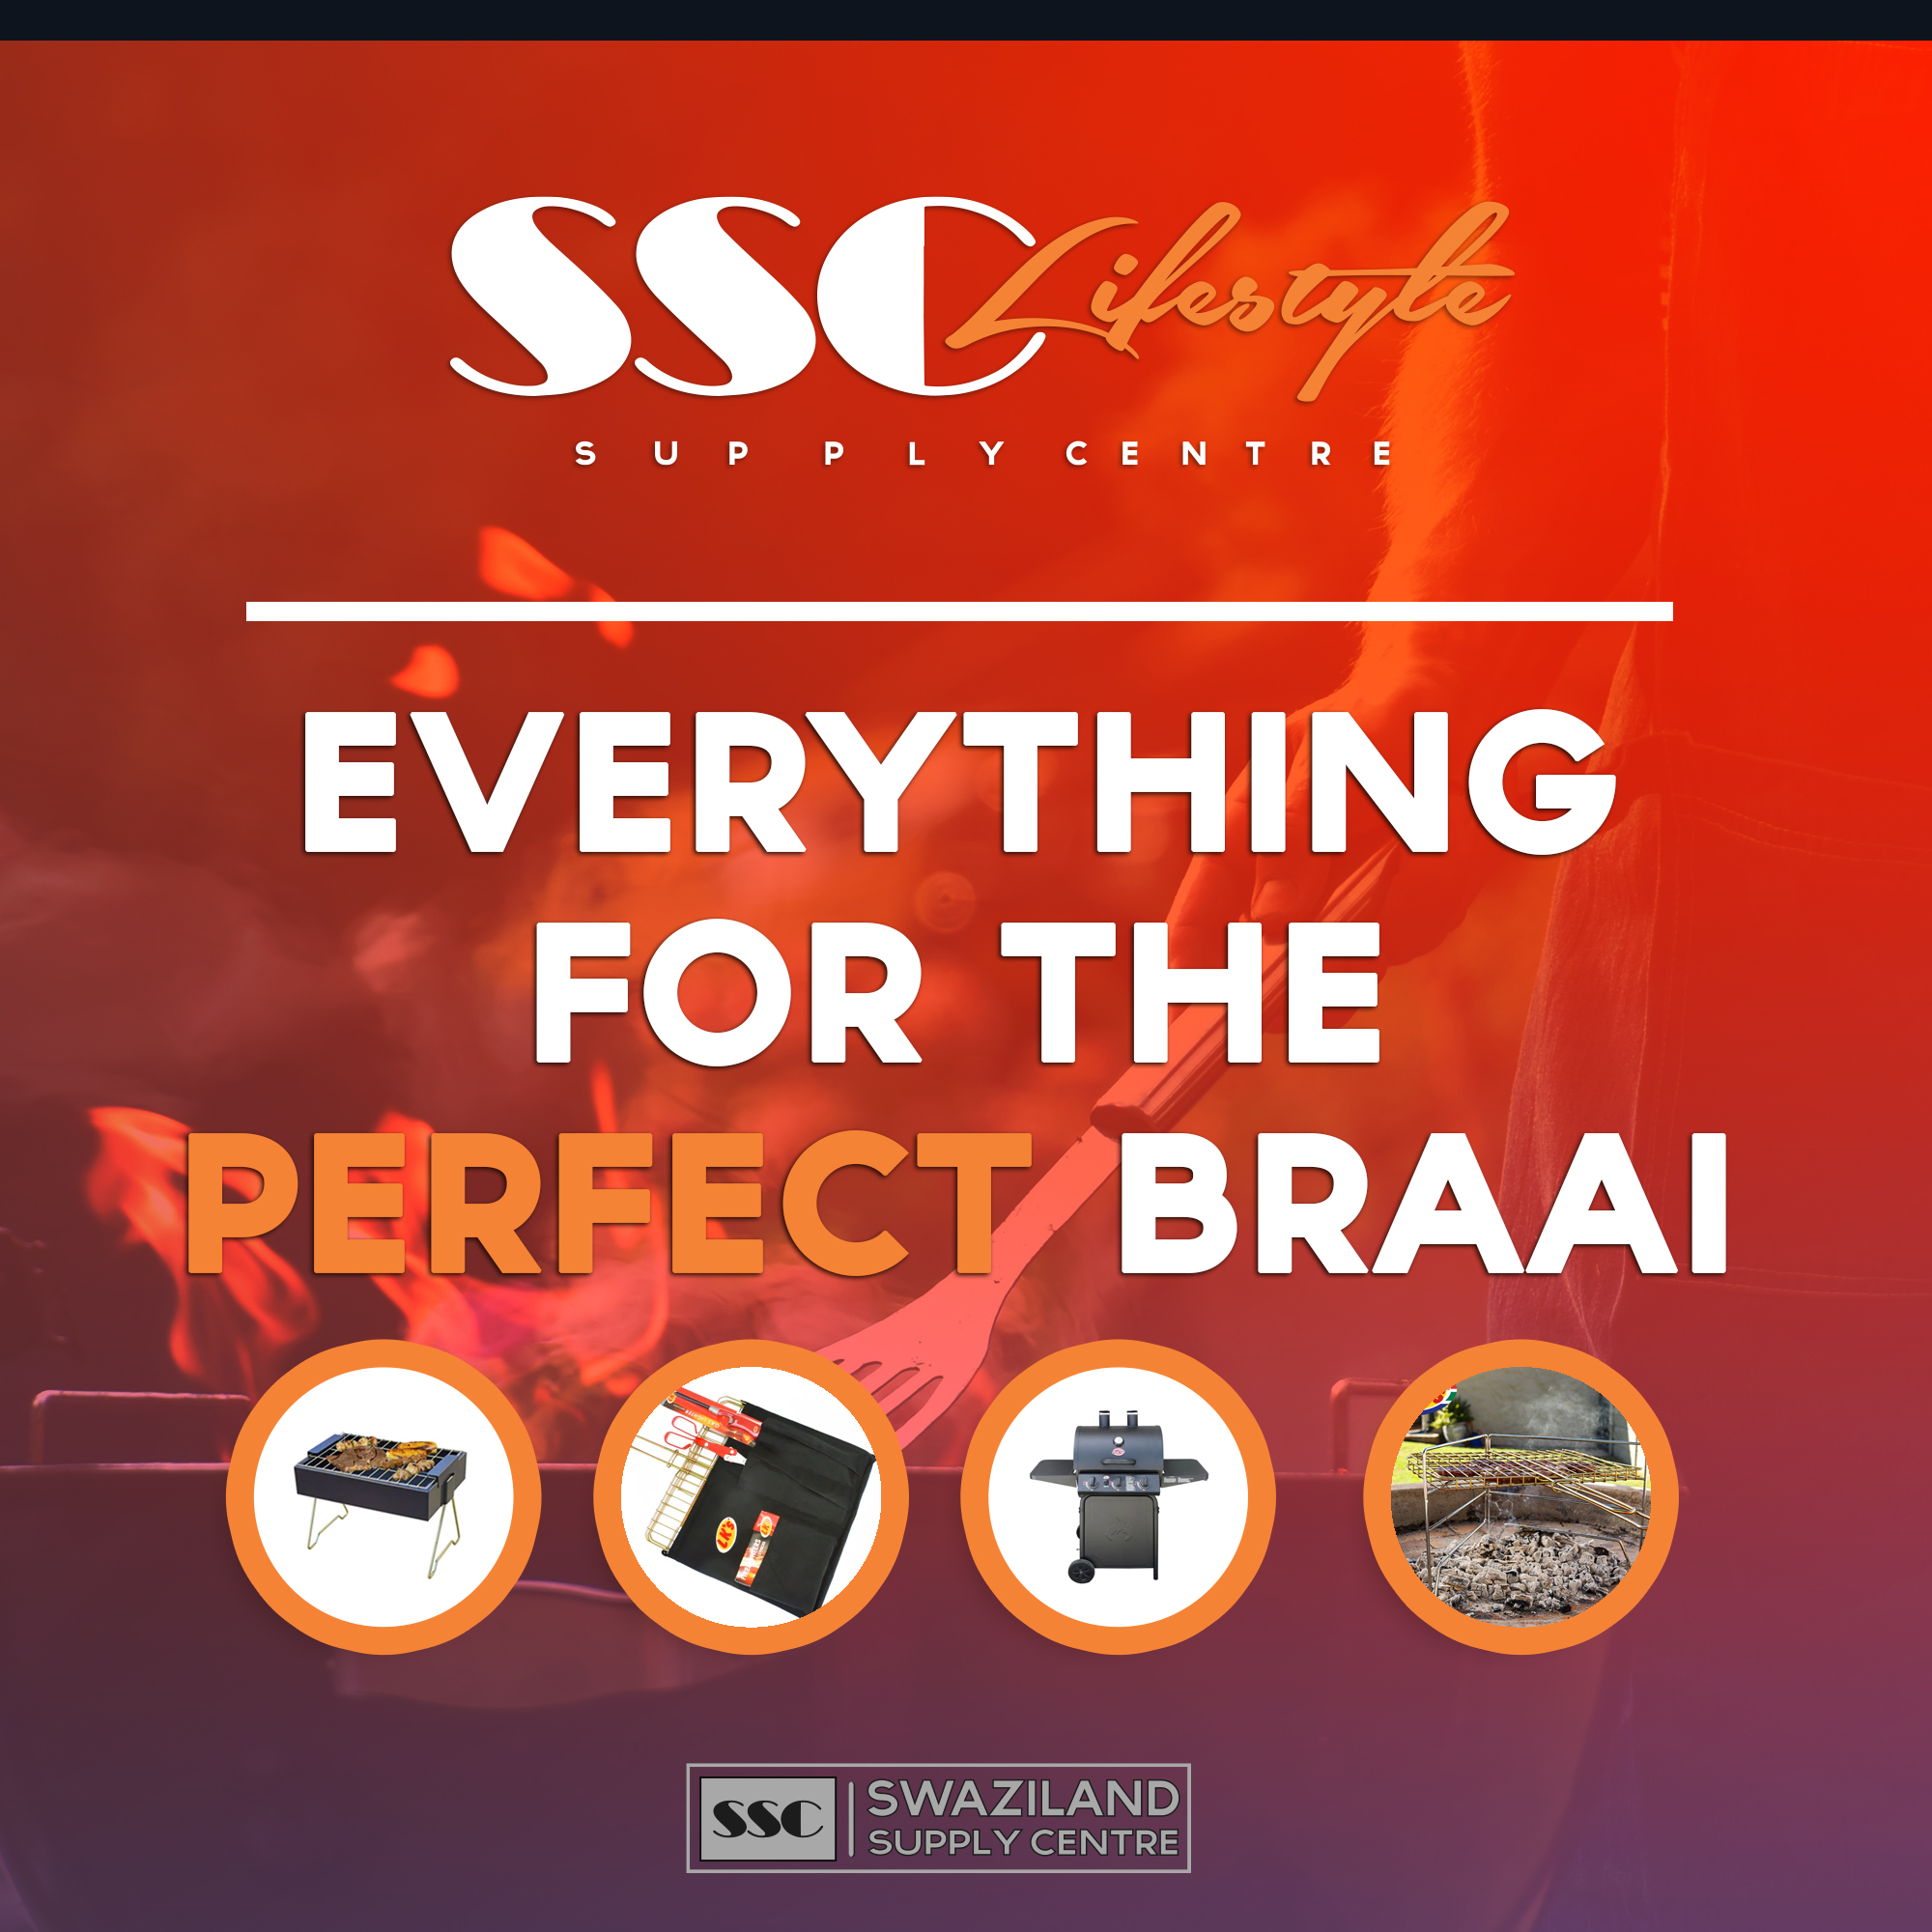 Everything for the perfect braai at ssc lifestyle